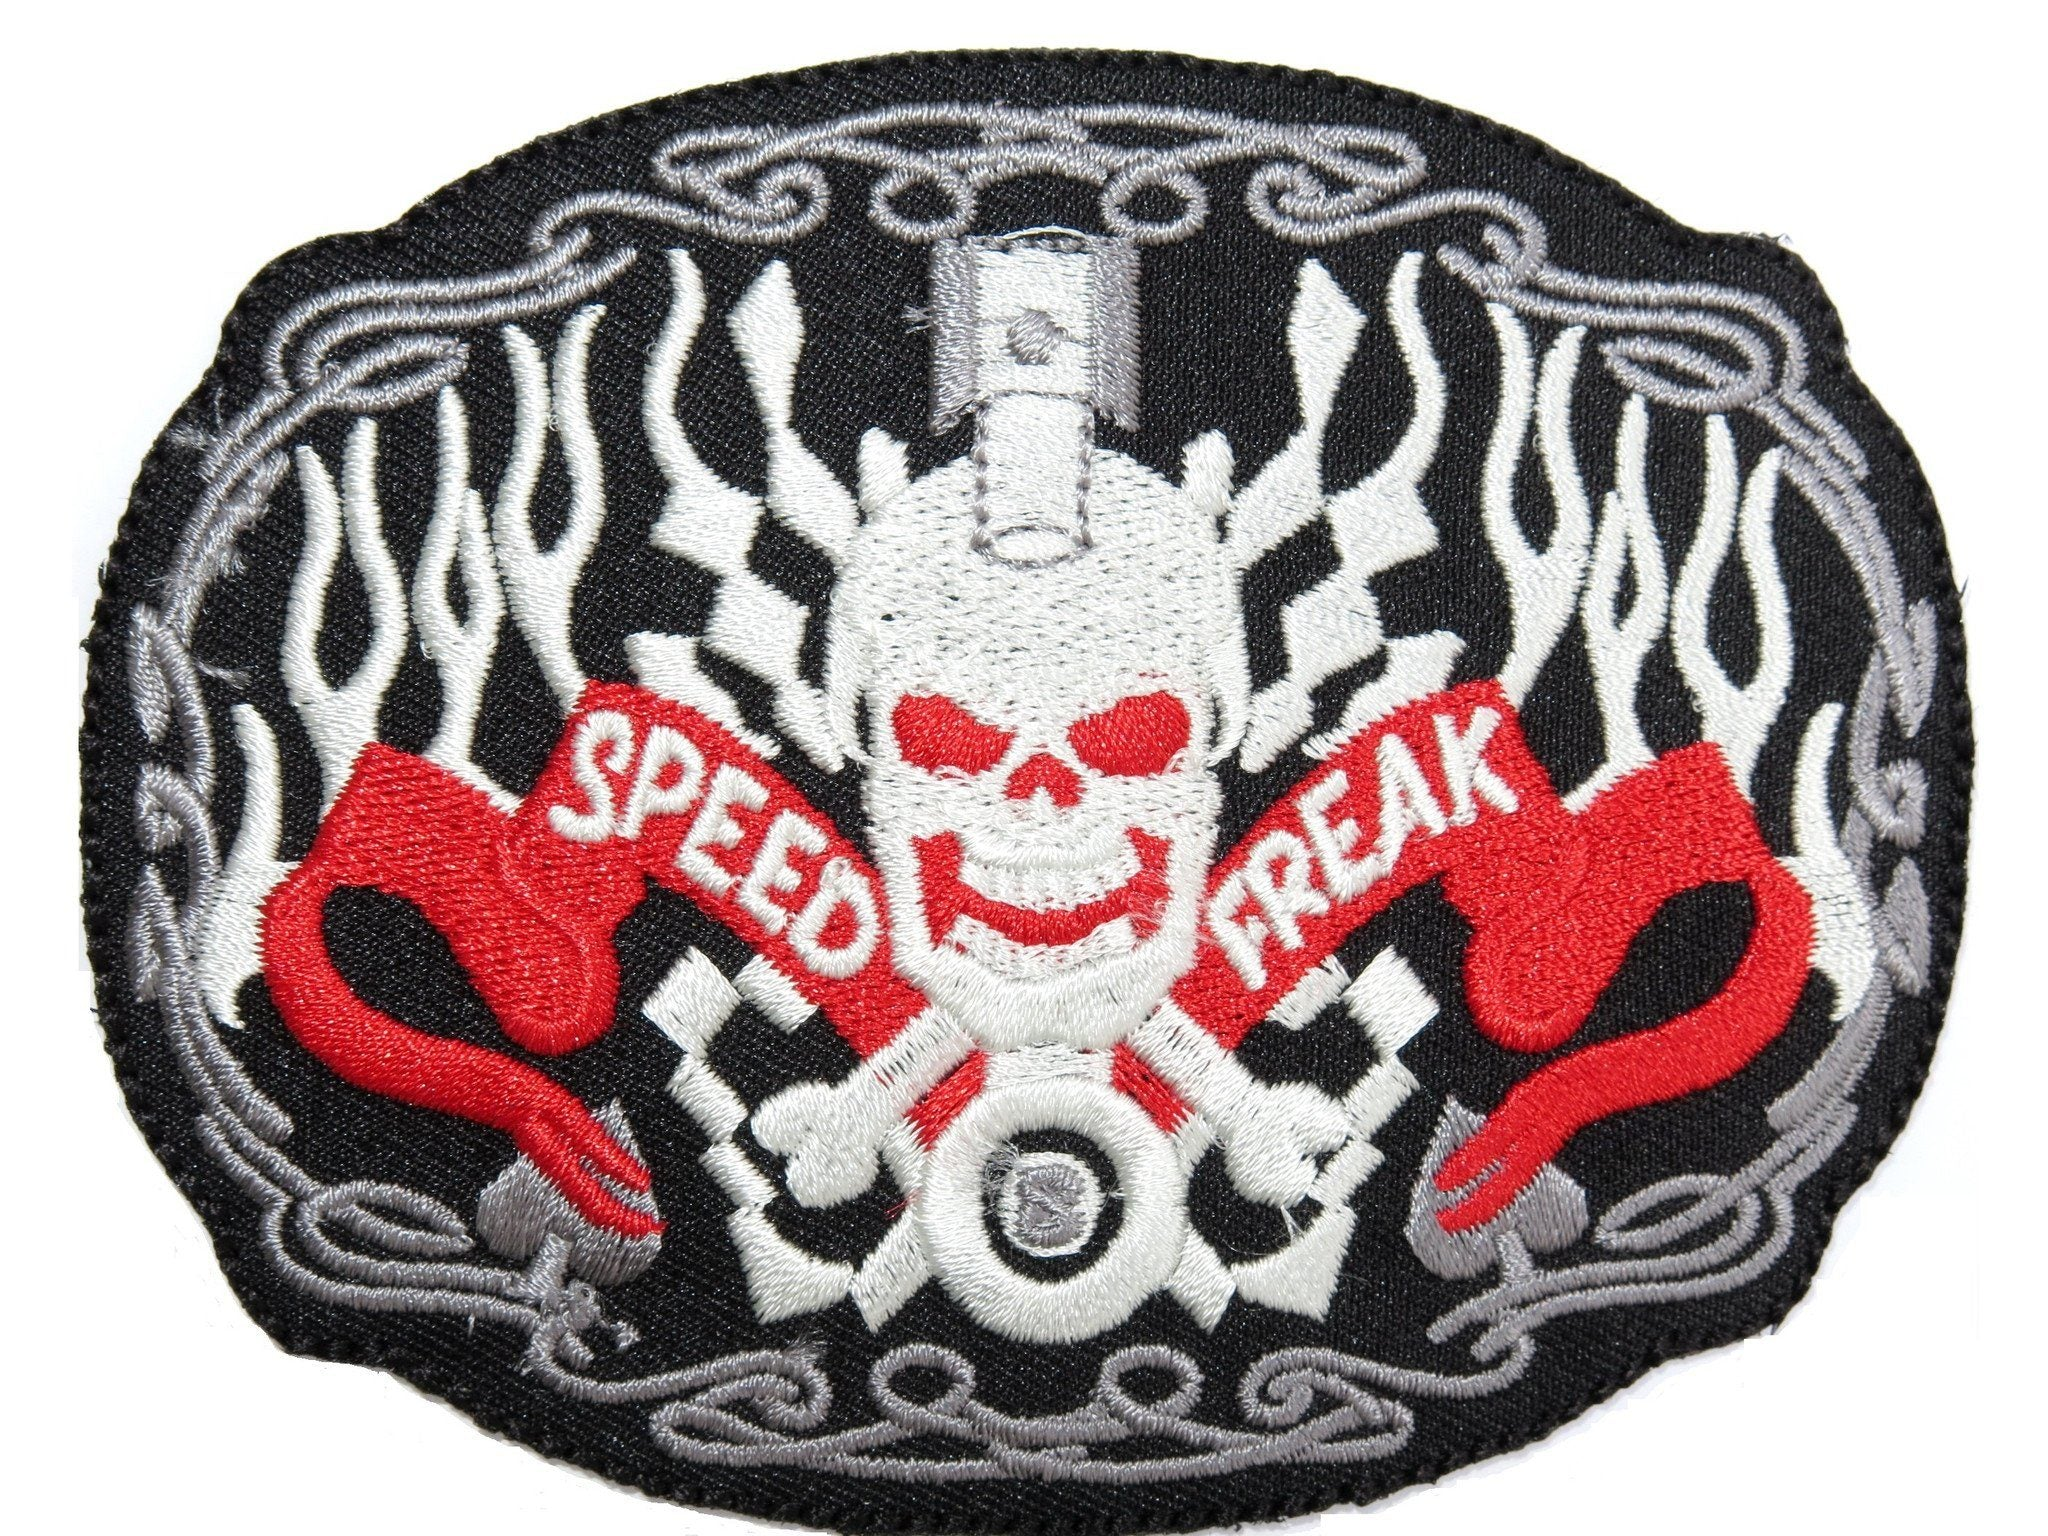 SPEED FREAK Piston Head Skull Sew Iron On Embroidered Jacket Patch - A Patch E Store